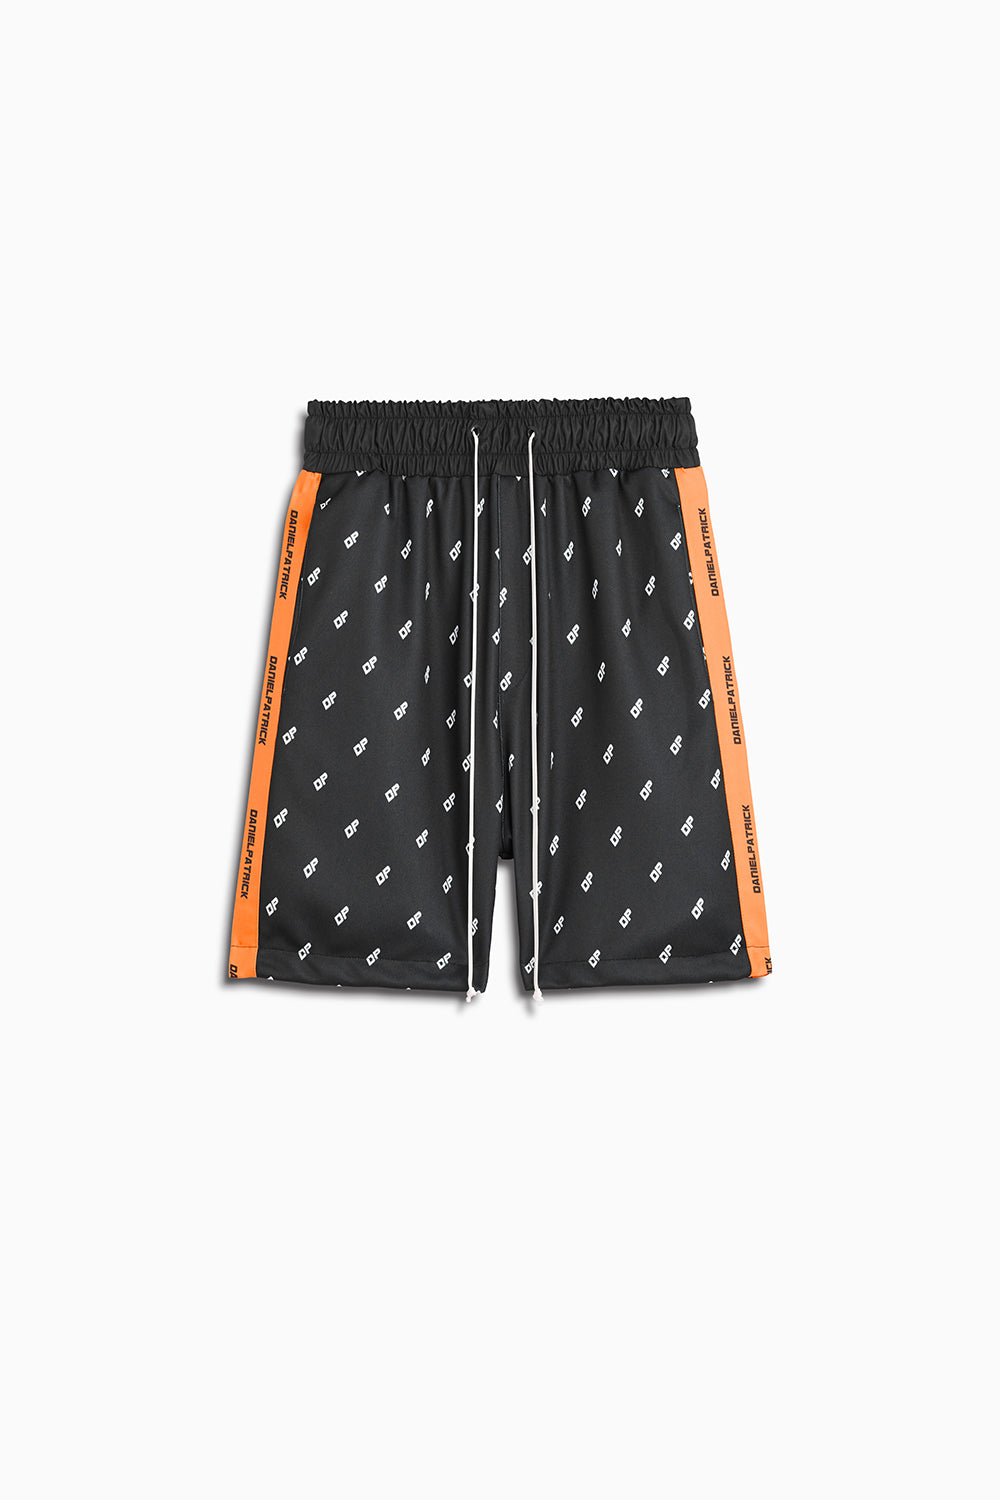 DP gym short in black/neon orange by daniel patrick